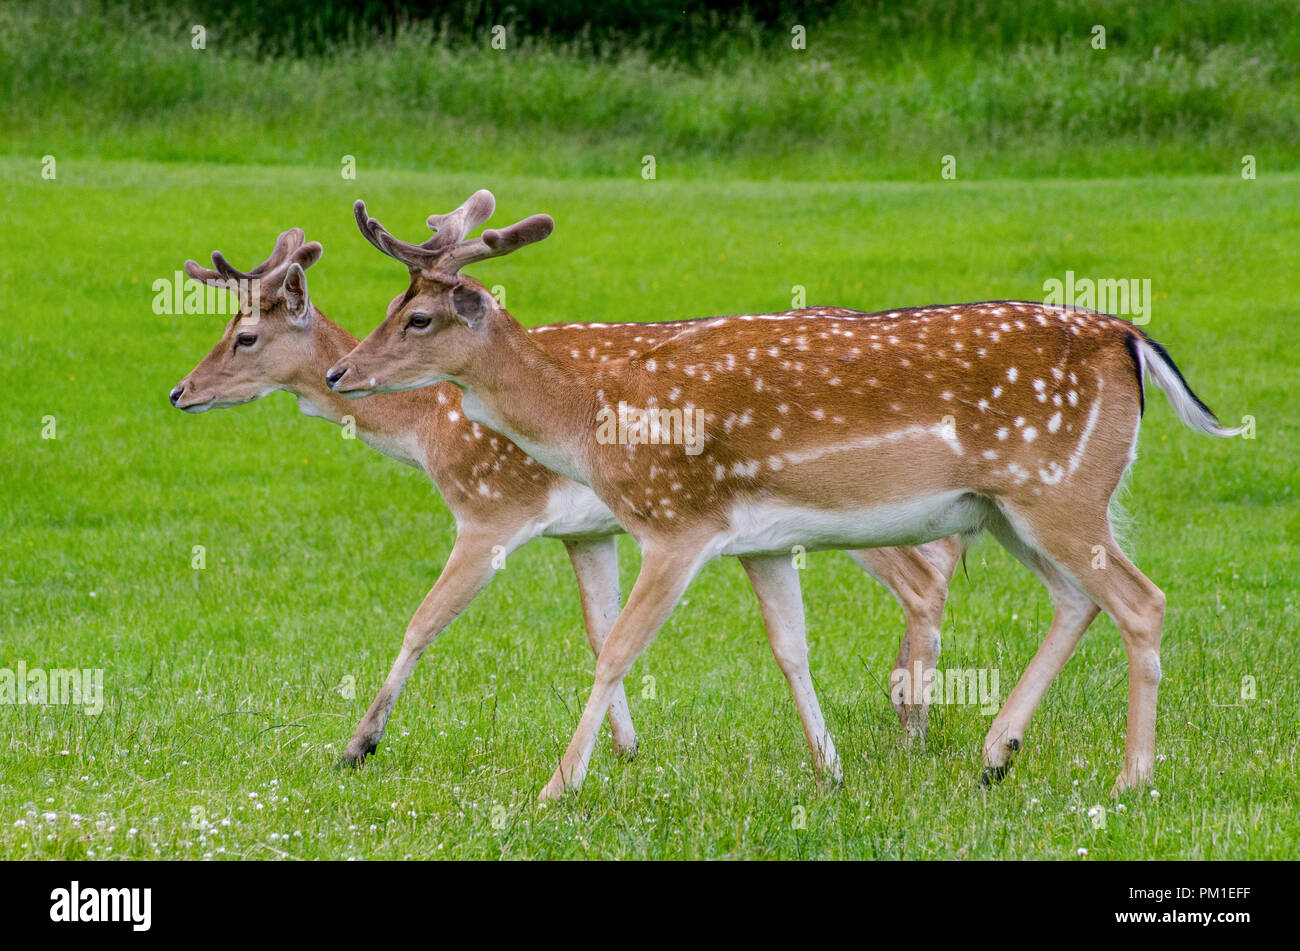 A rear view of two fallow deer as they walk on the grass in the meadow - Stock Image